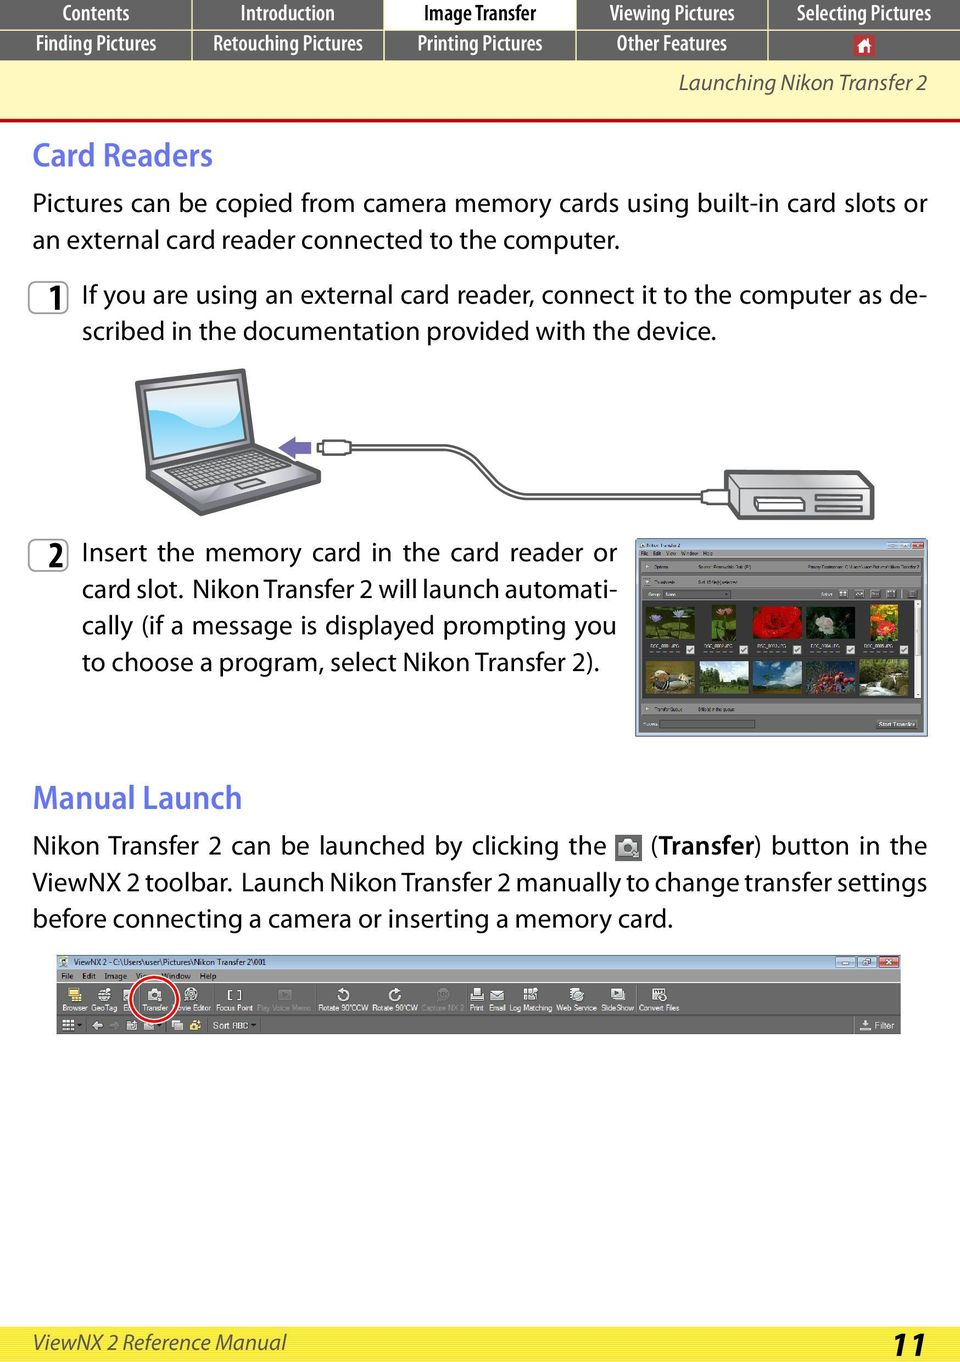 2 Insert the memory card in the card reader or card slot.